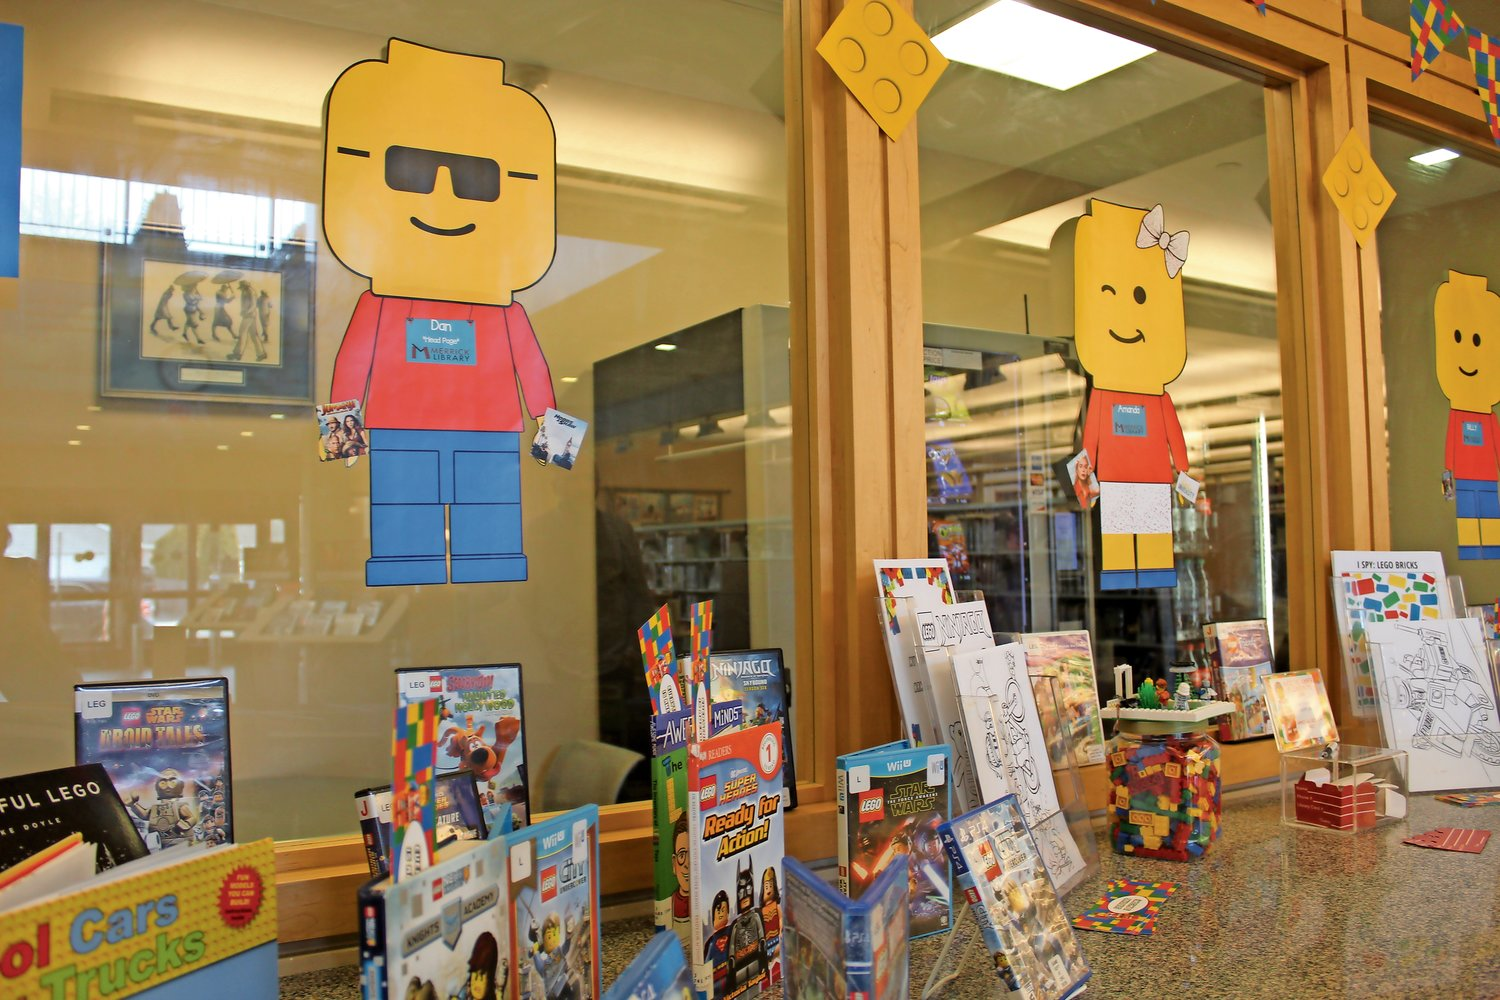 Michelle Craddock, a staffer who works in the library's User-experience Department, created this LEGO-themed display in the main lobby.